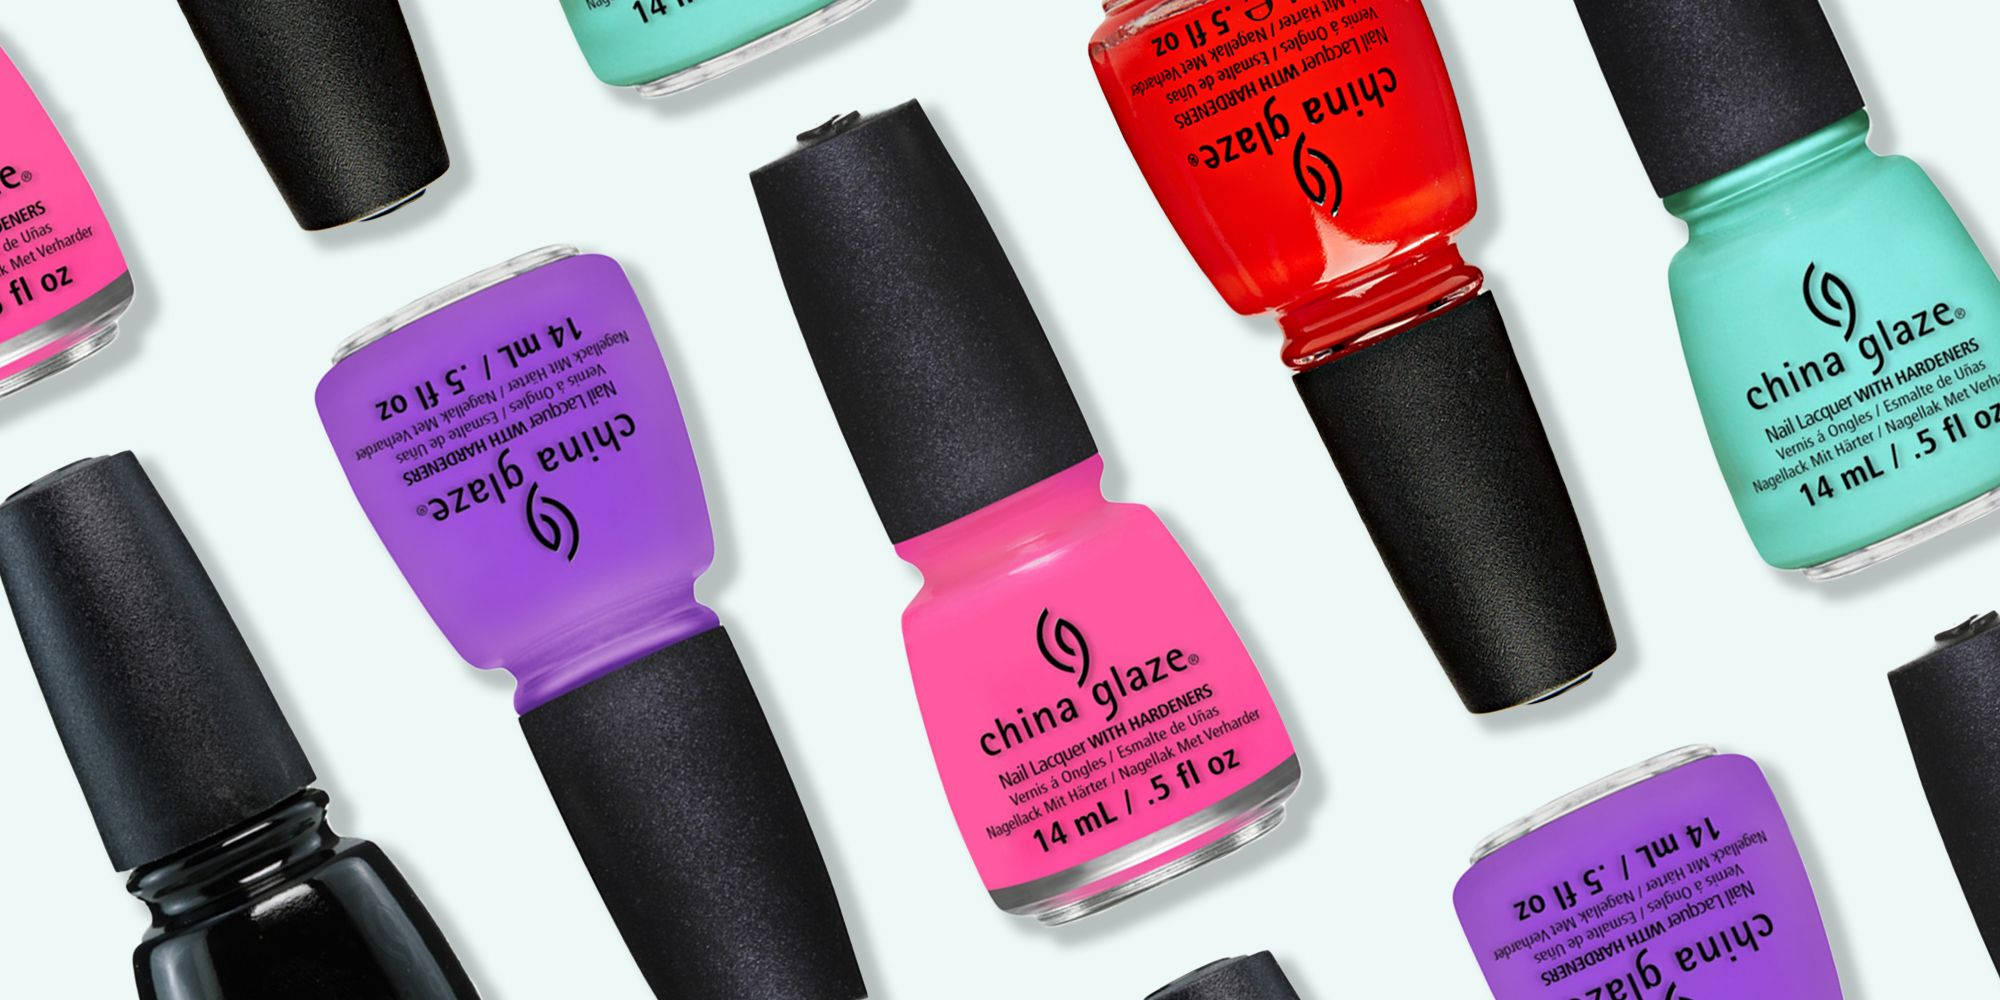 9 Best China Glaze Nail Polish Colors in 2018 - Nail Polish by China ...